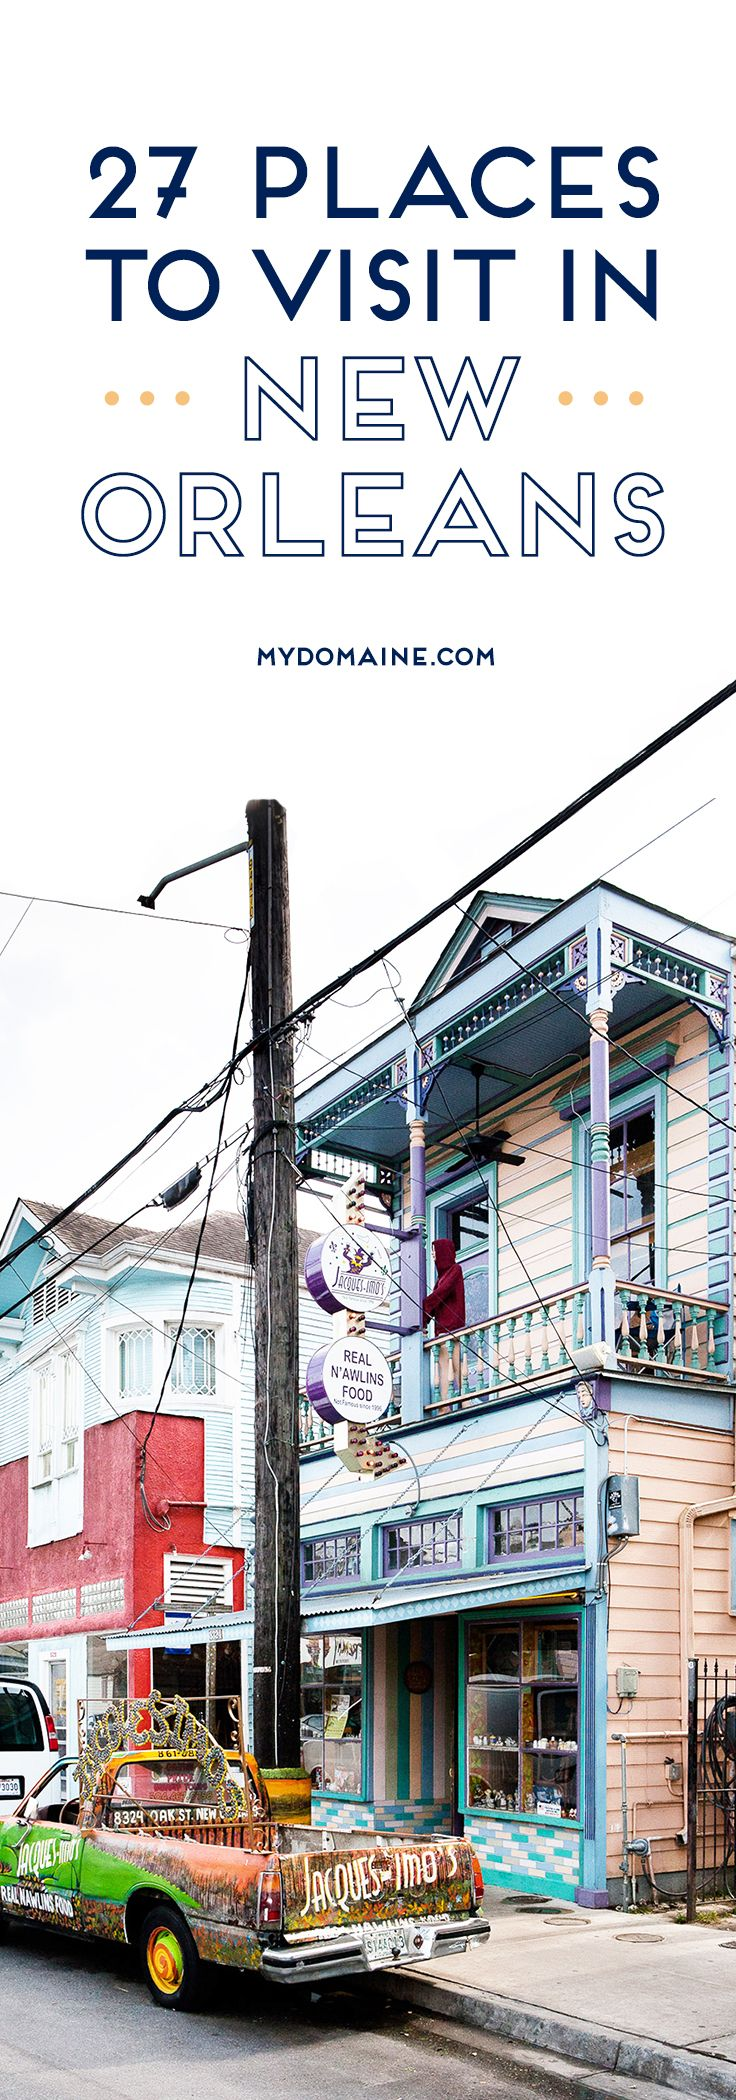 The only NOLA guide you'll ever need // New Orleans travel. I've been dying to go here for years and years!!